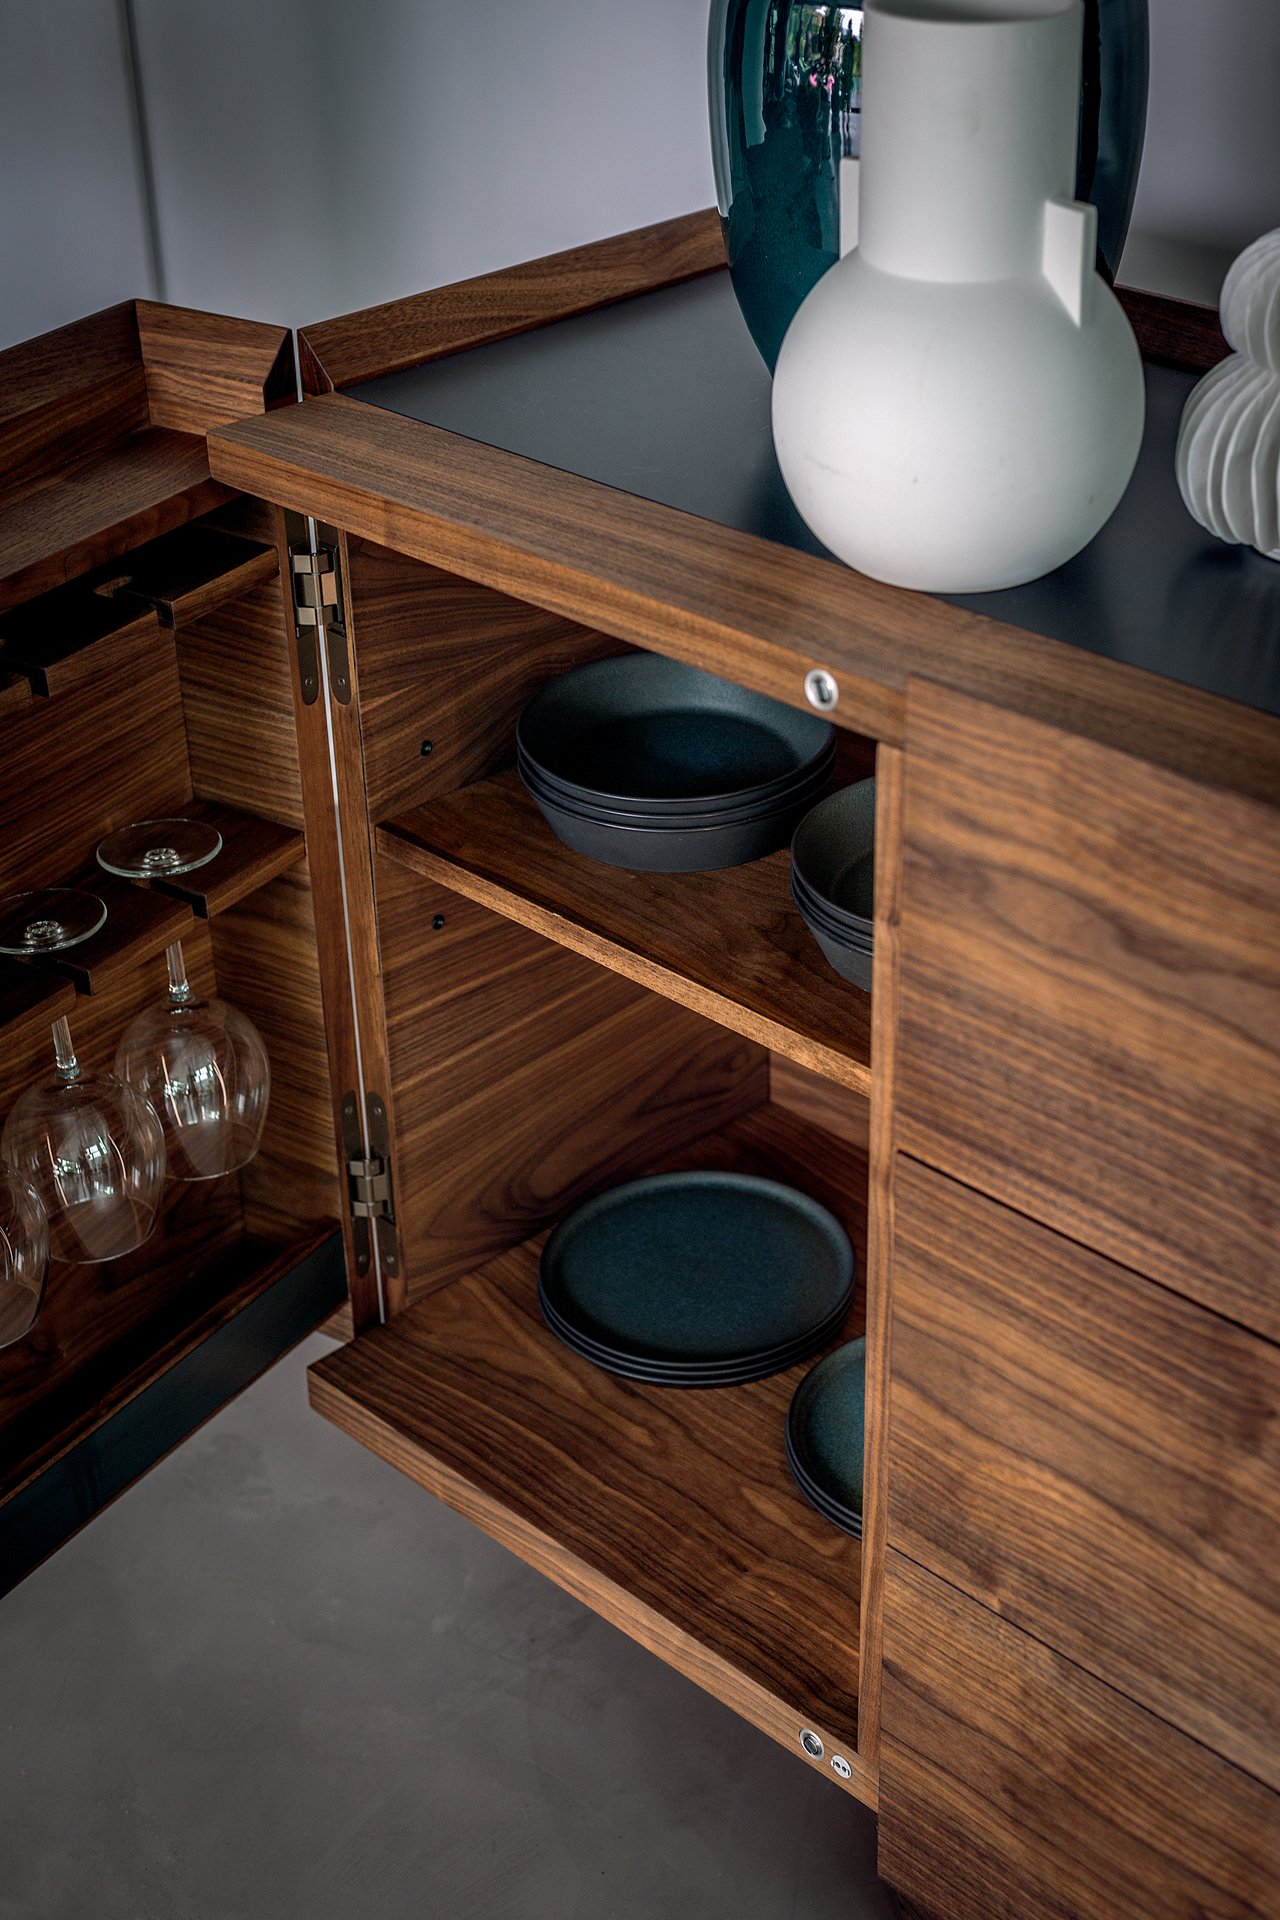 Pandora Sideboard from Riva 1920, designed by Giuliano & Gabriele Cappelletti